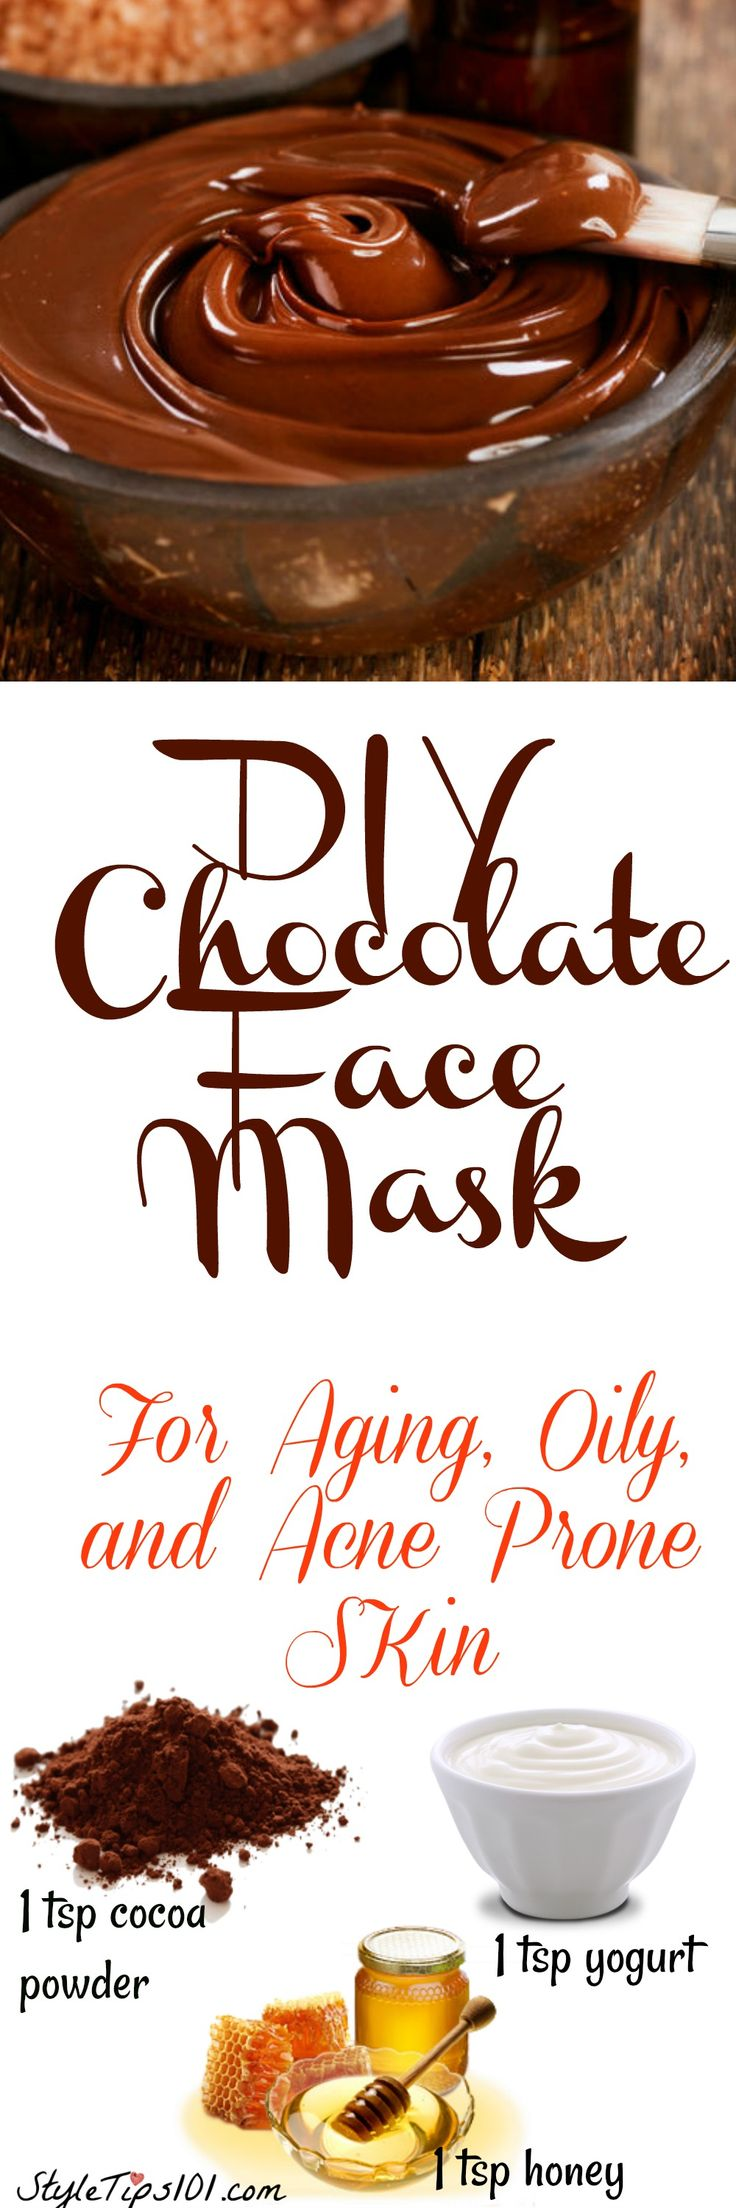 There's something delicious for your skin #facemask #chocolatemask